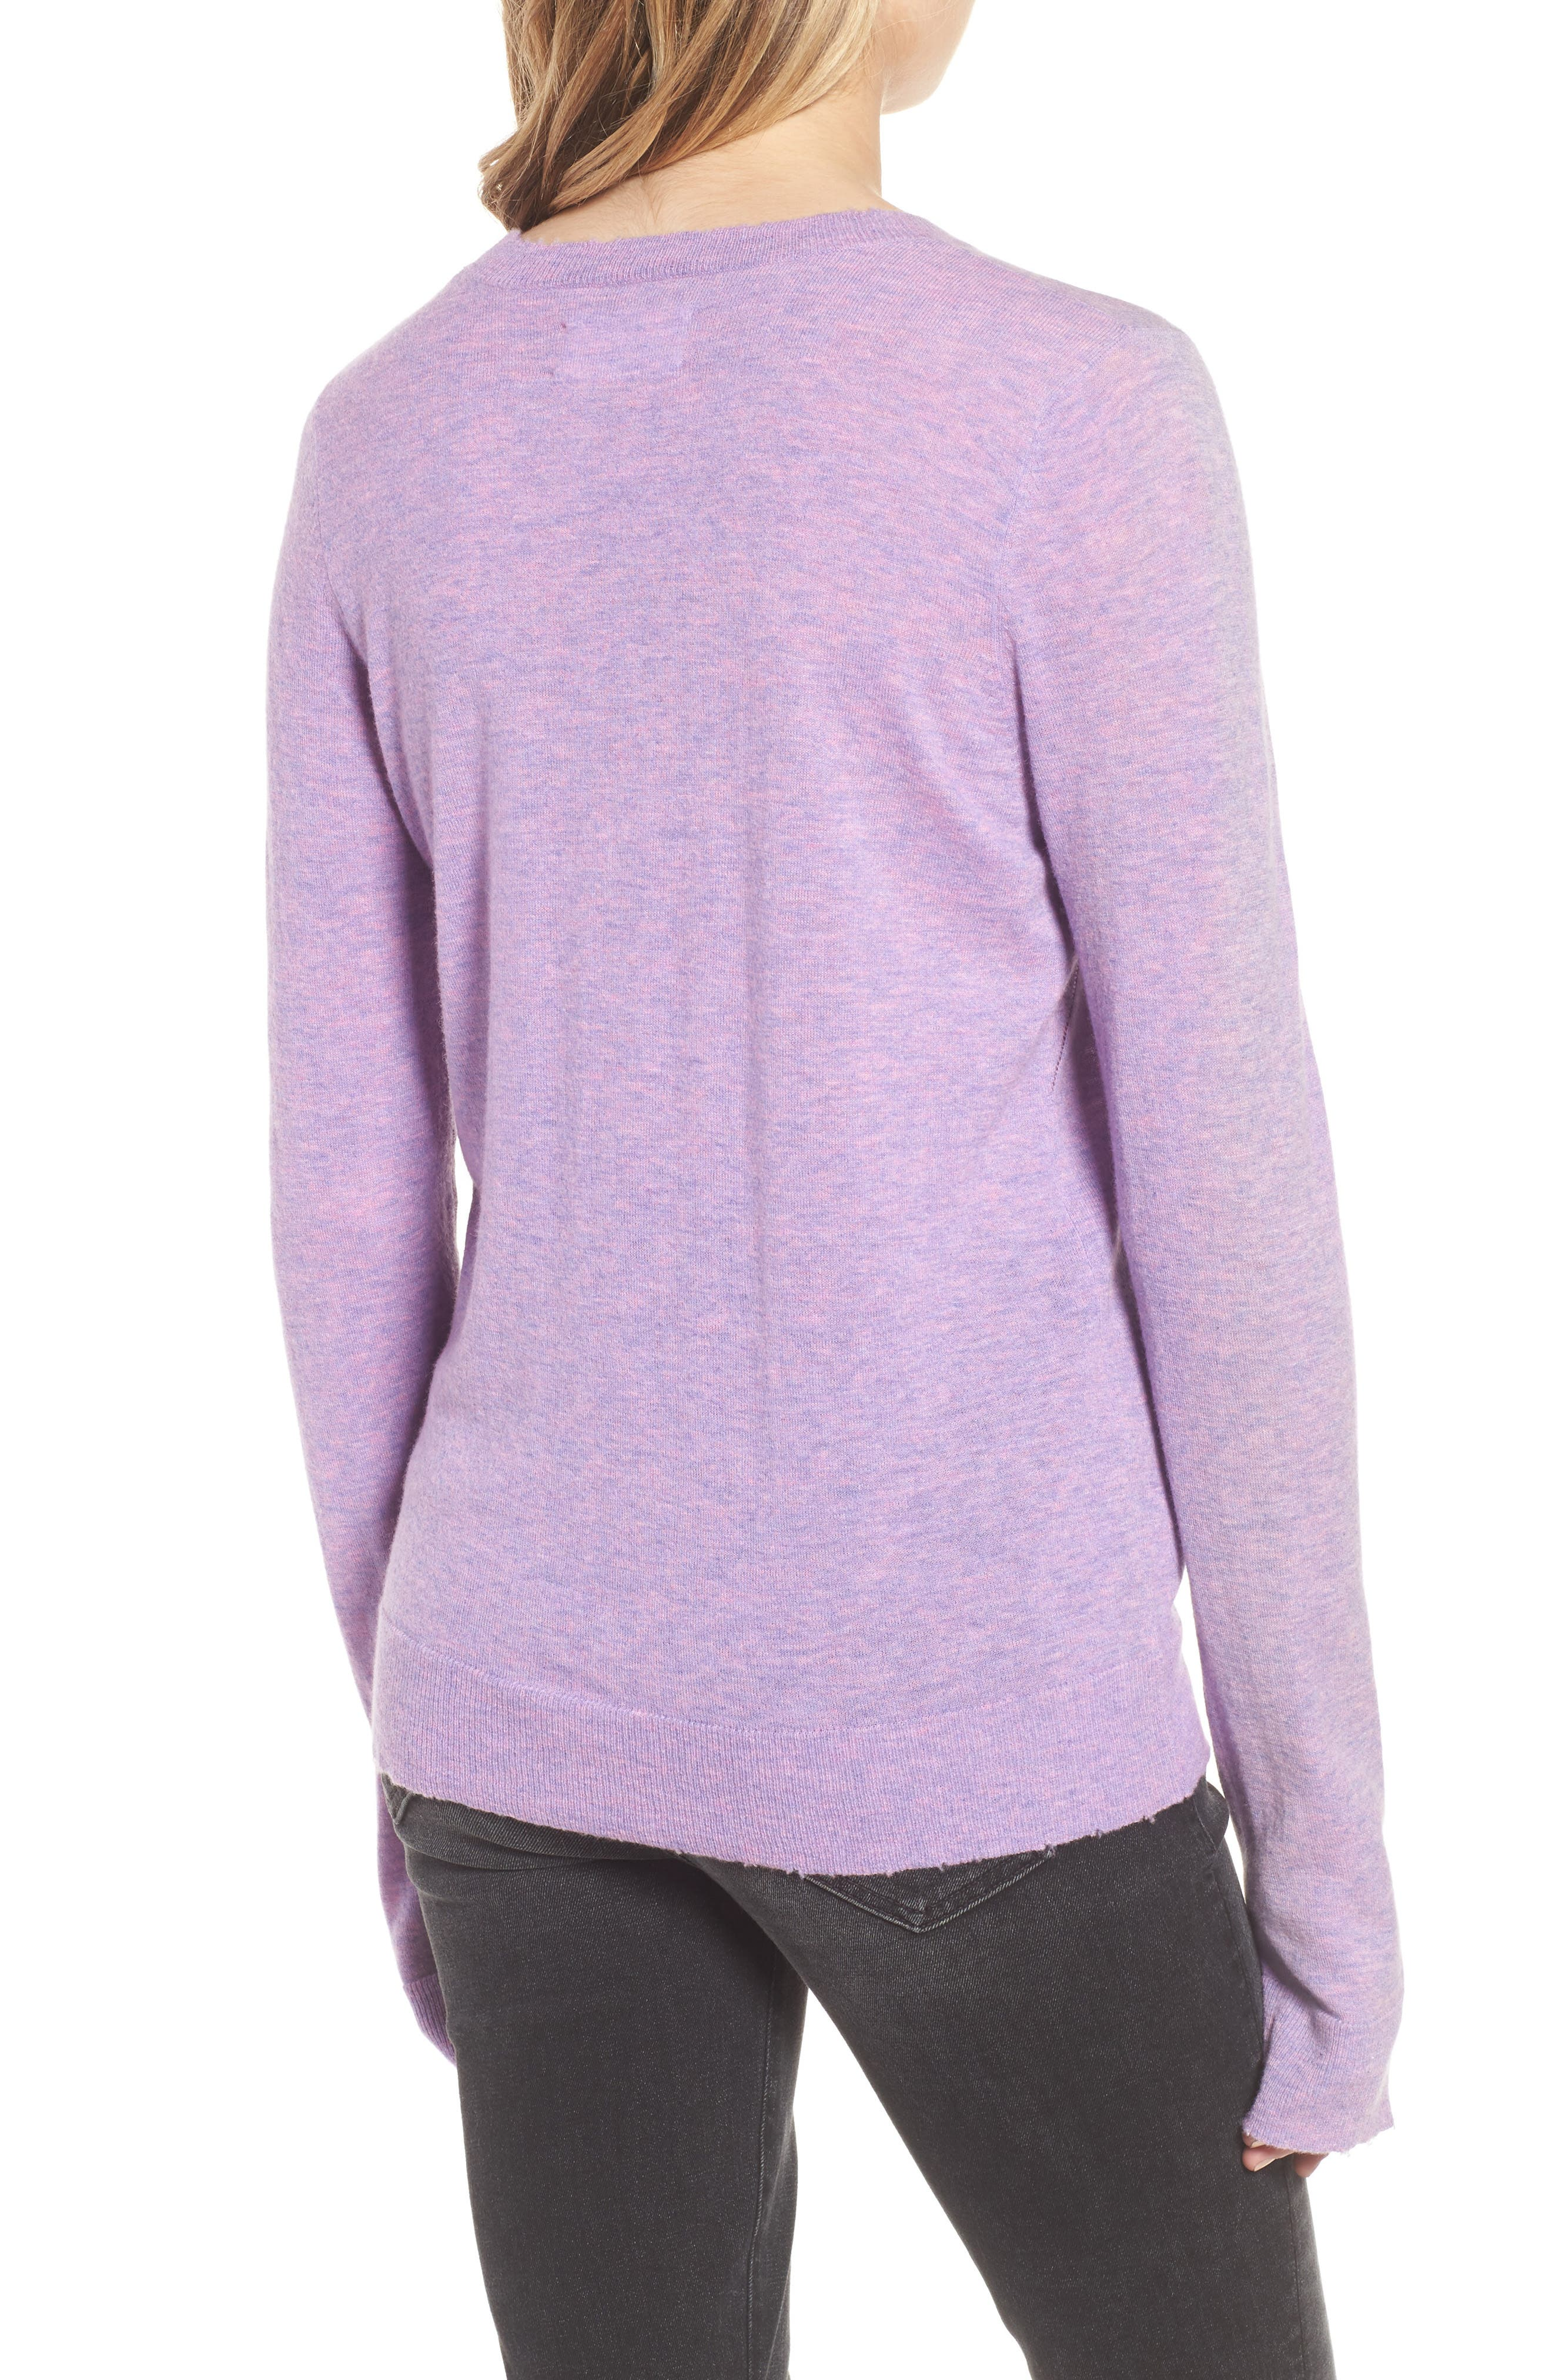 Miss Bis Cashmere Sweater,                             Alternate thumbnail 2, color,                             Lilac